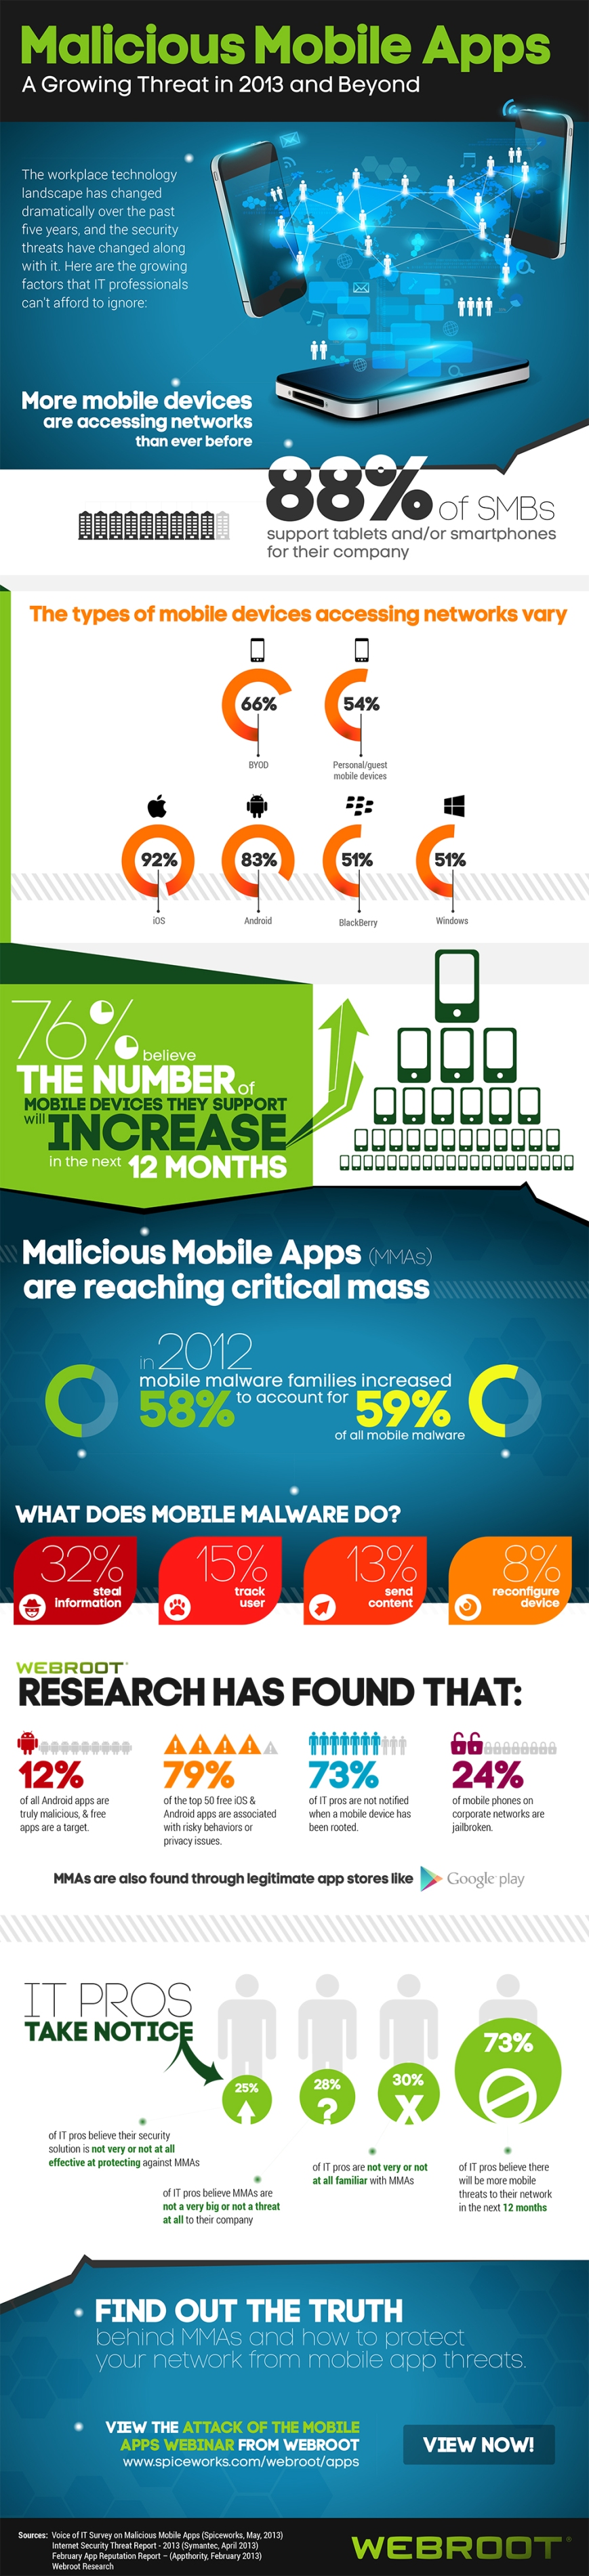 malicious-mobile-apps-2